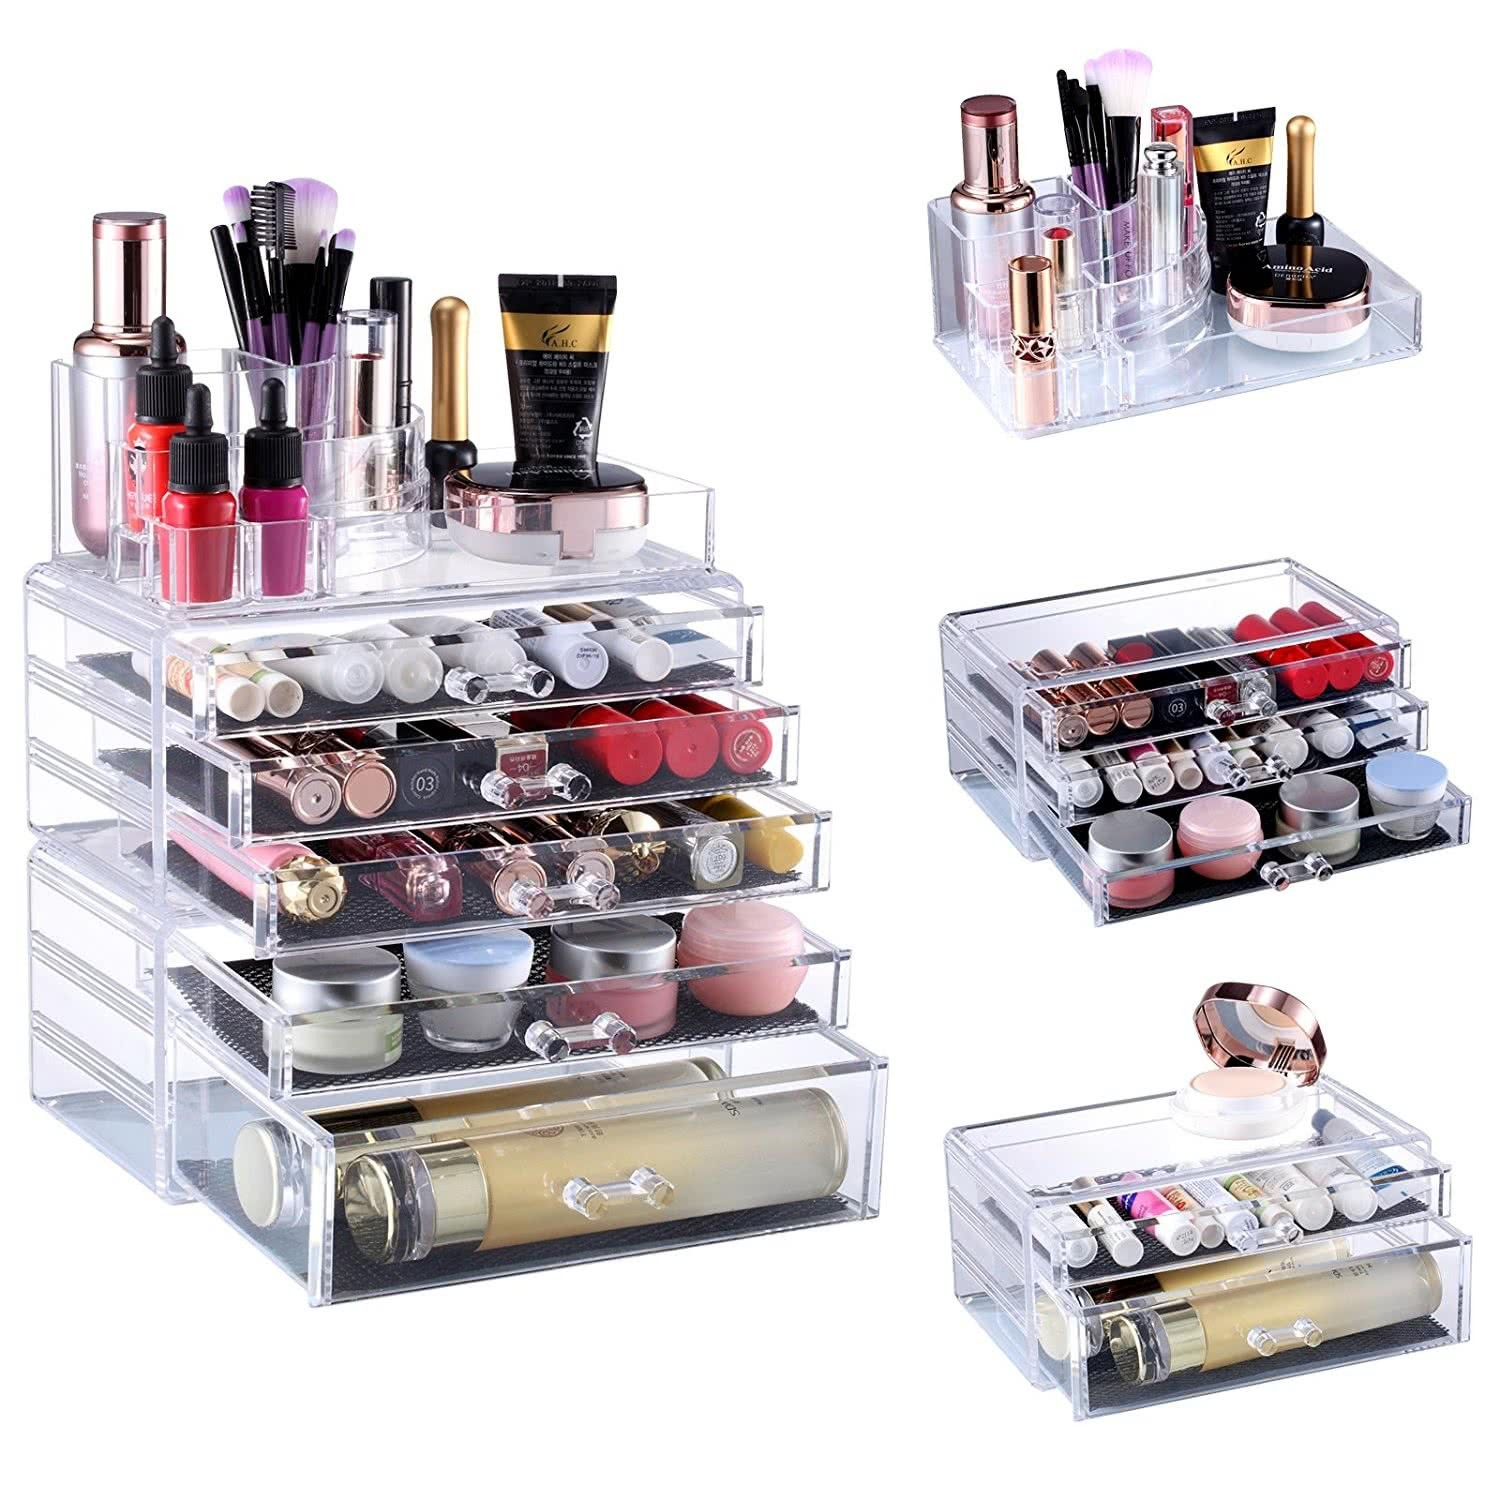 seelux acryl kosmetik make up aufbewahrung organizer mit schubladen und abteile. Black Bedroom Furniture Sets. Home Design Ideas